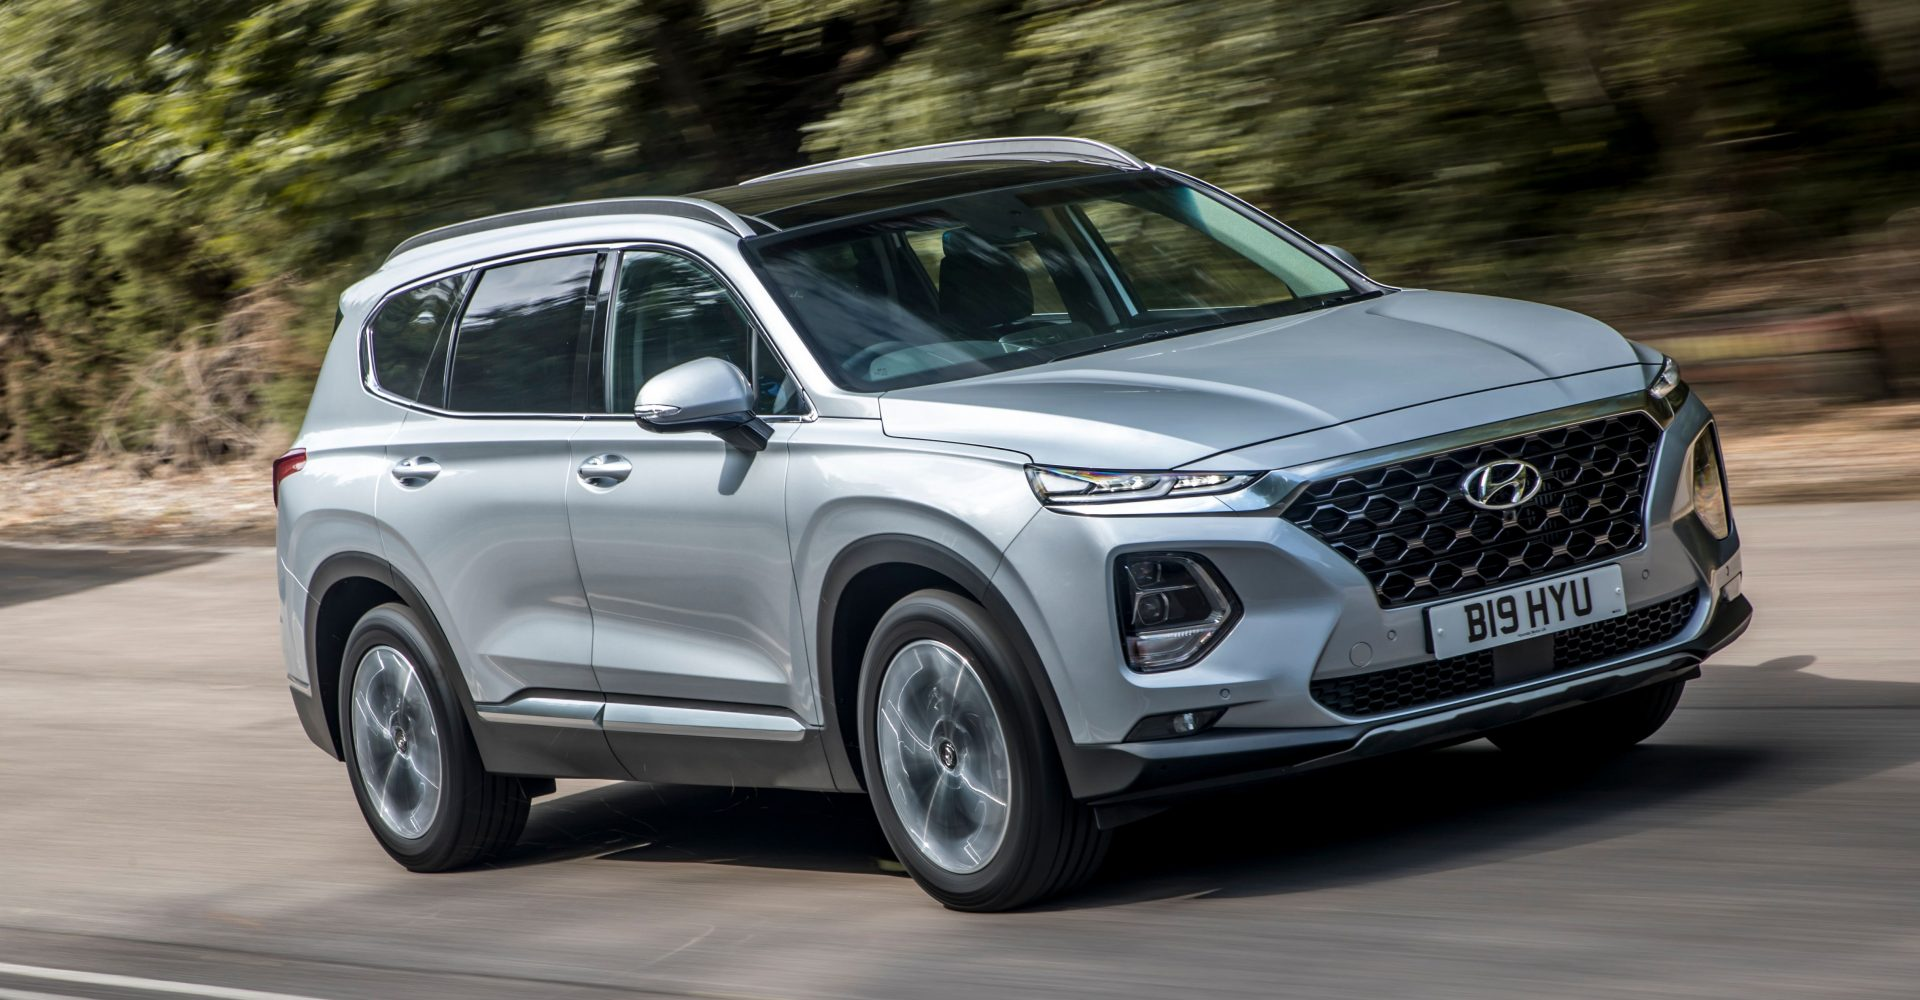 Hyundai buyers can save up to £6,000 in February